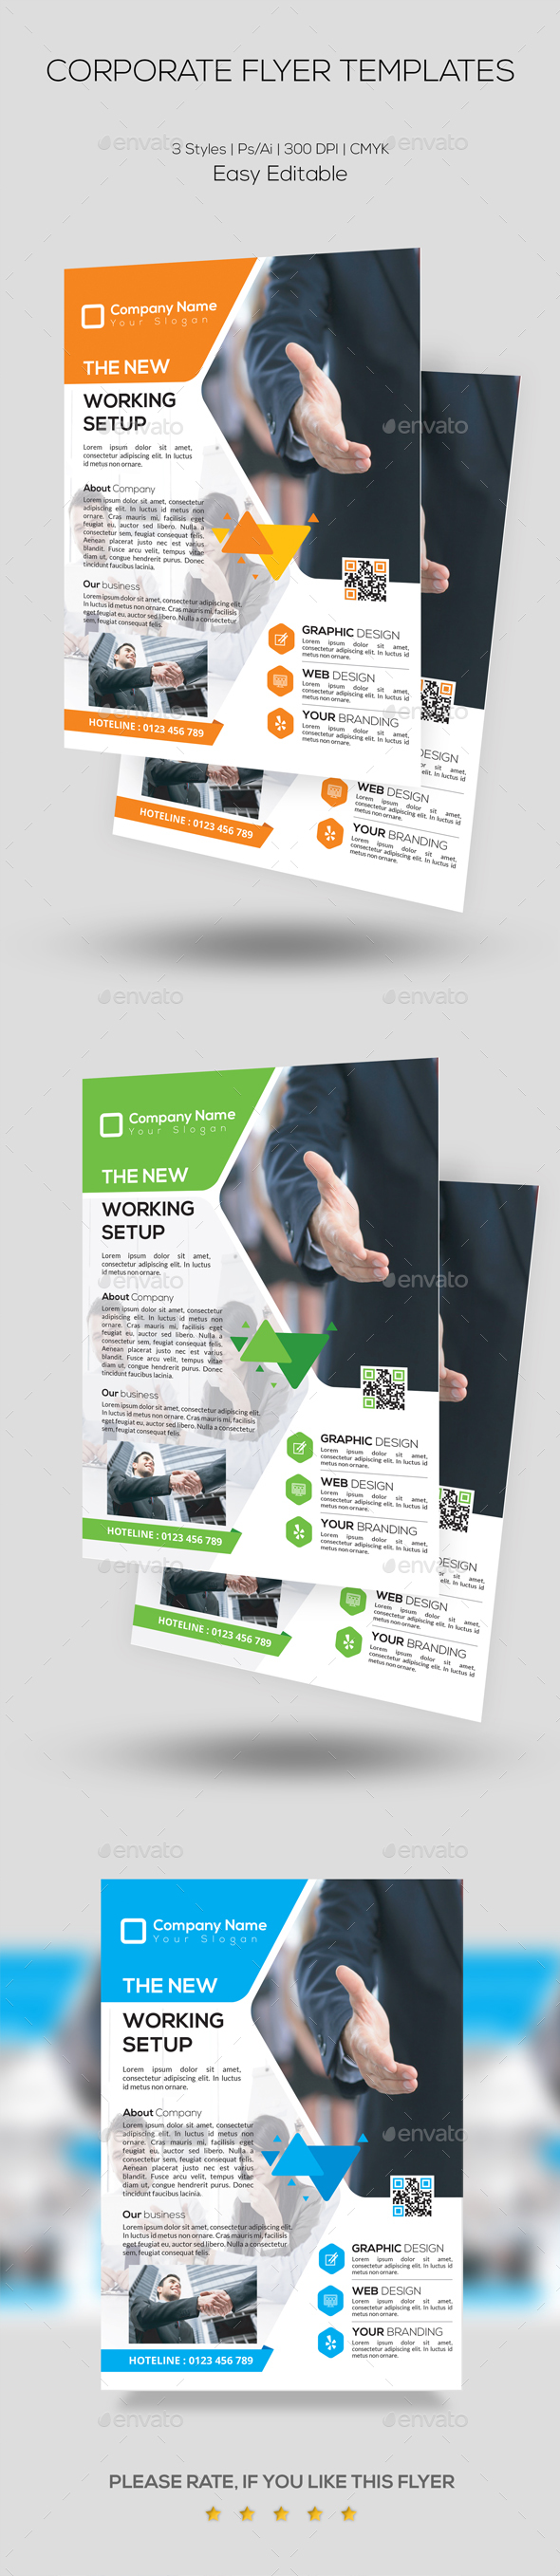 Corporate Flyer Template - Flyers Print Templates